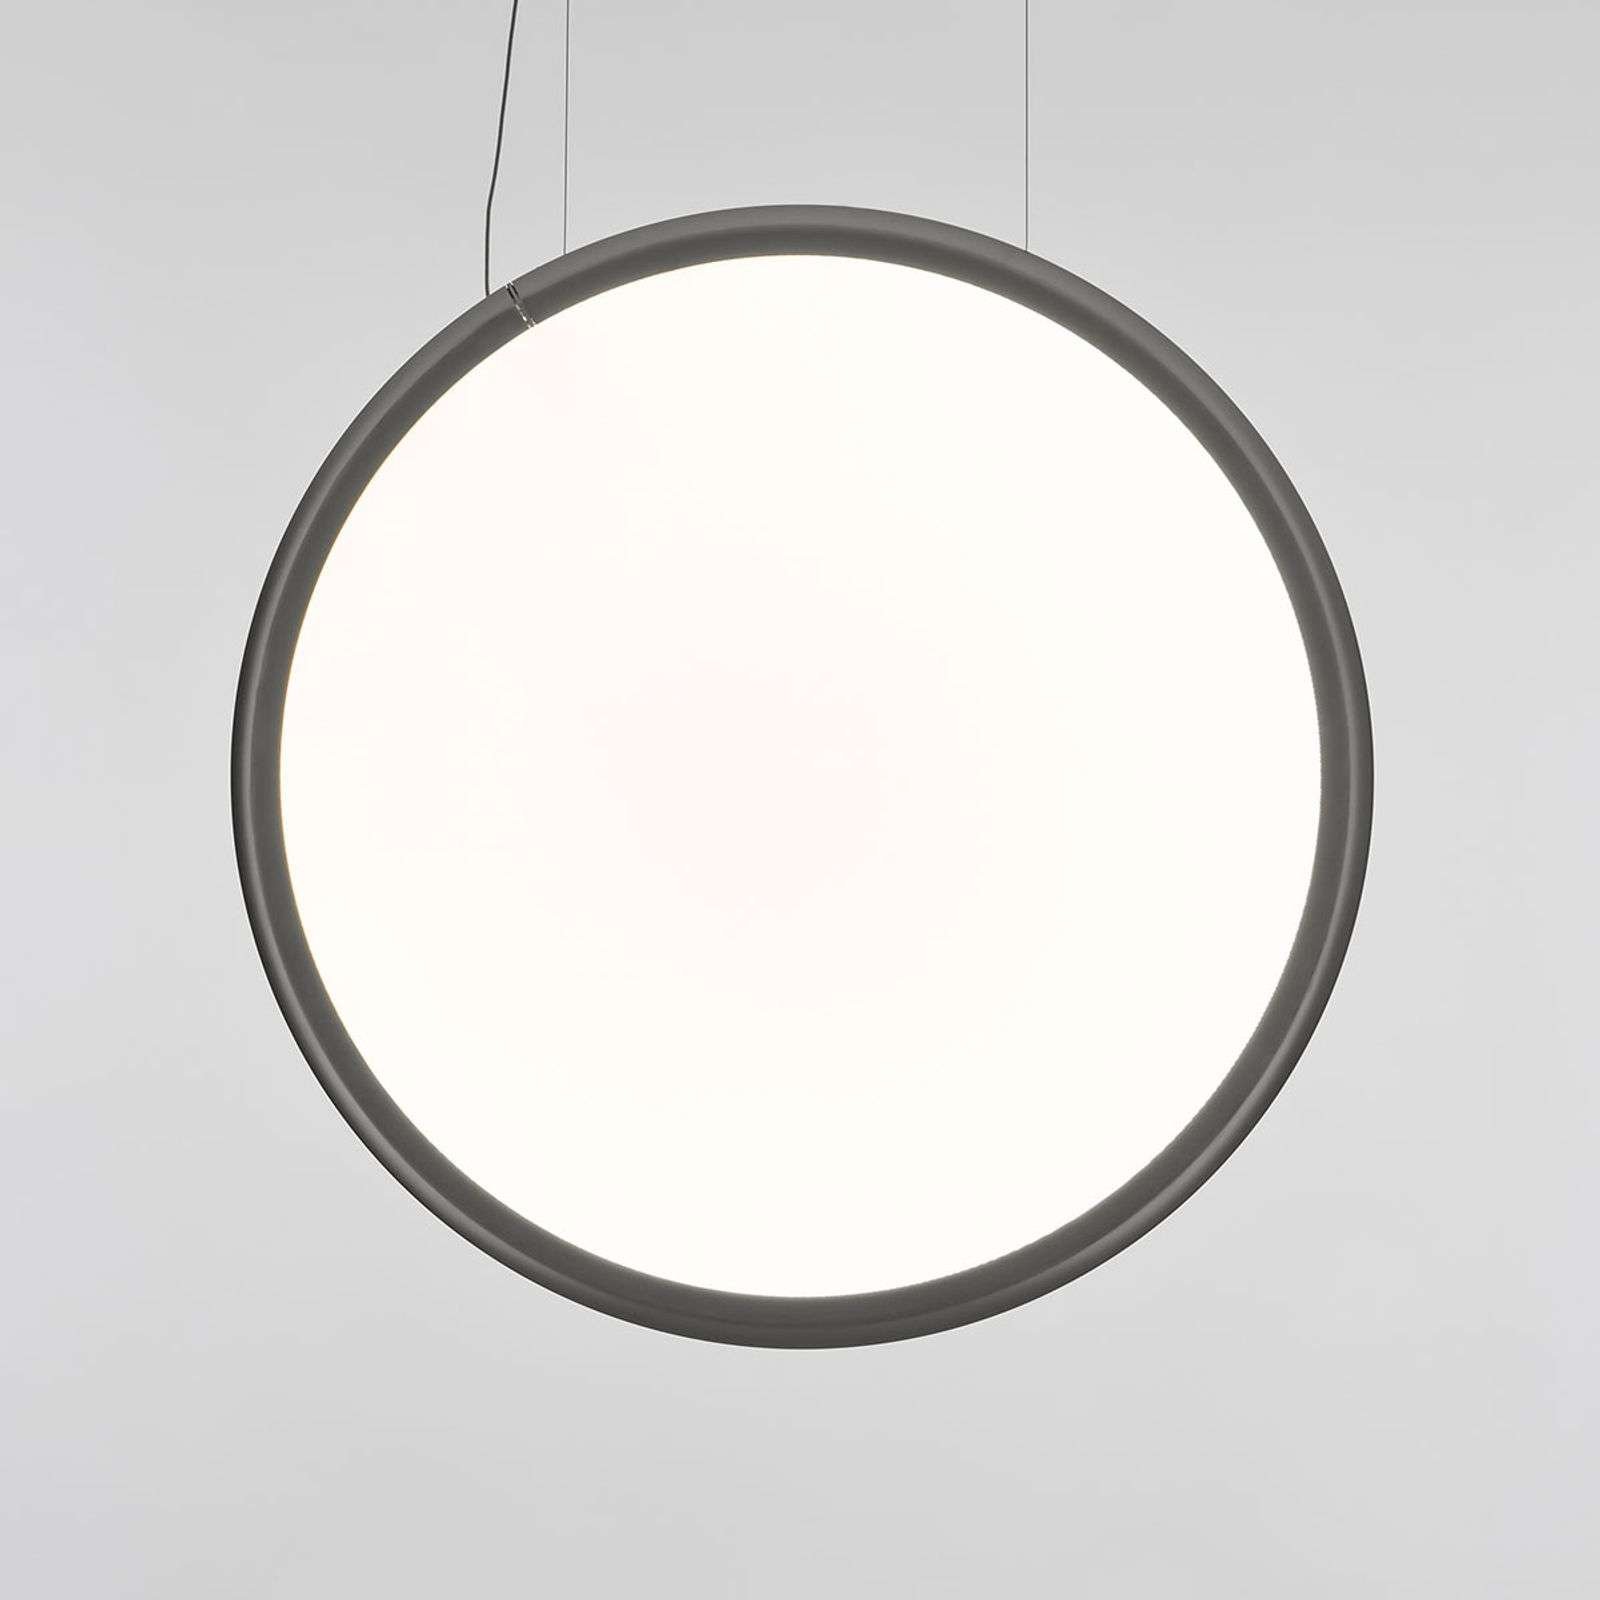 Artemide Discovery Vertical LED hanglamp 70 cm